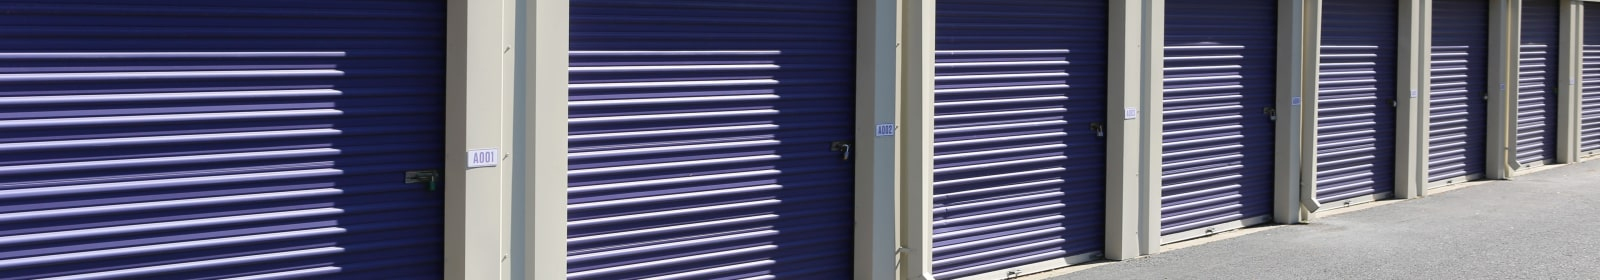 StoreSmart Self-Storage units in Naples, Florida